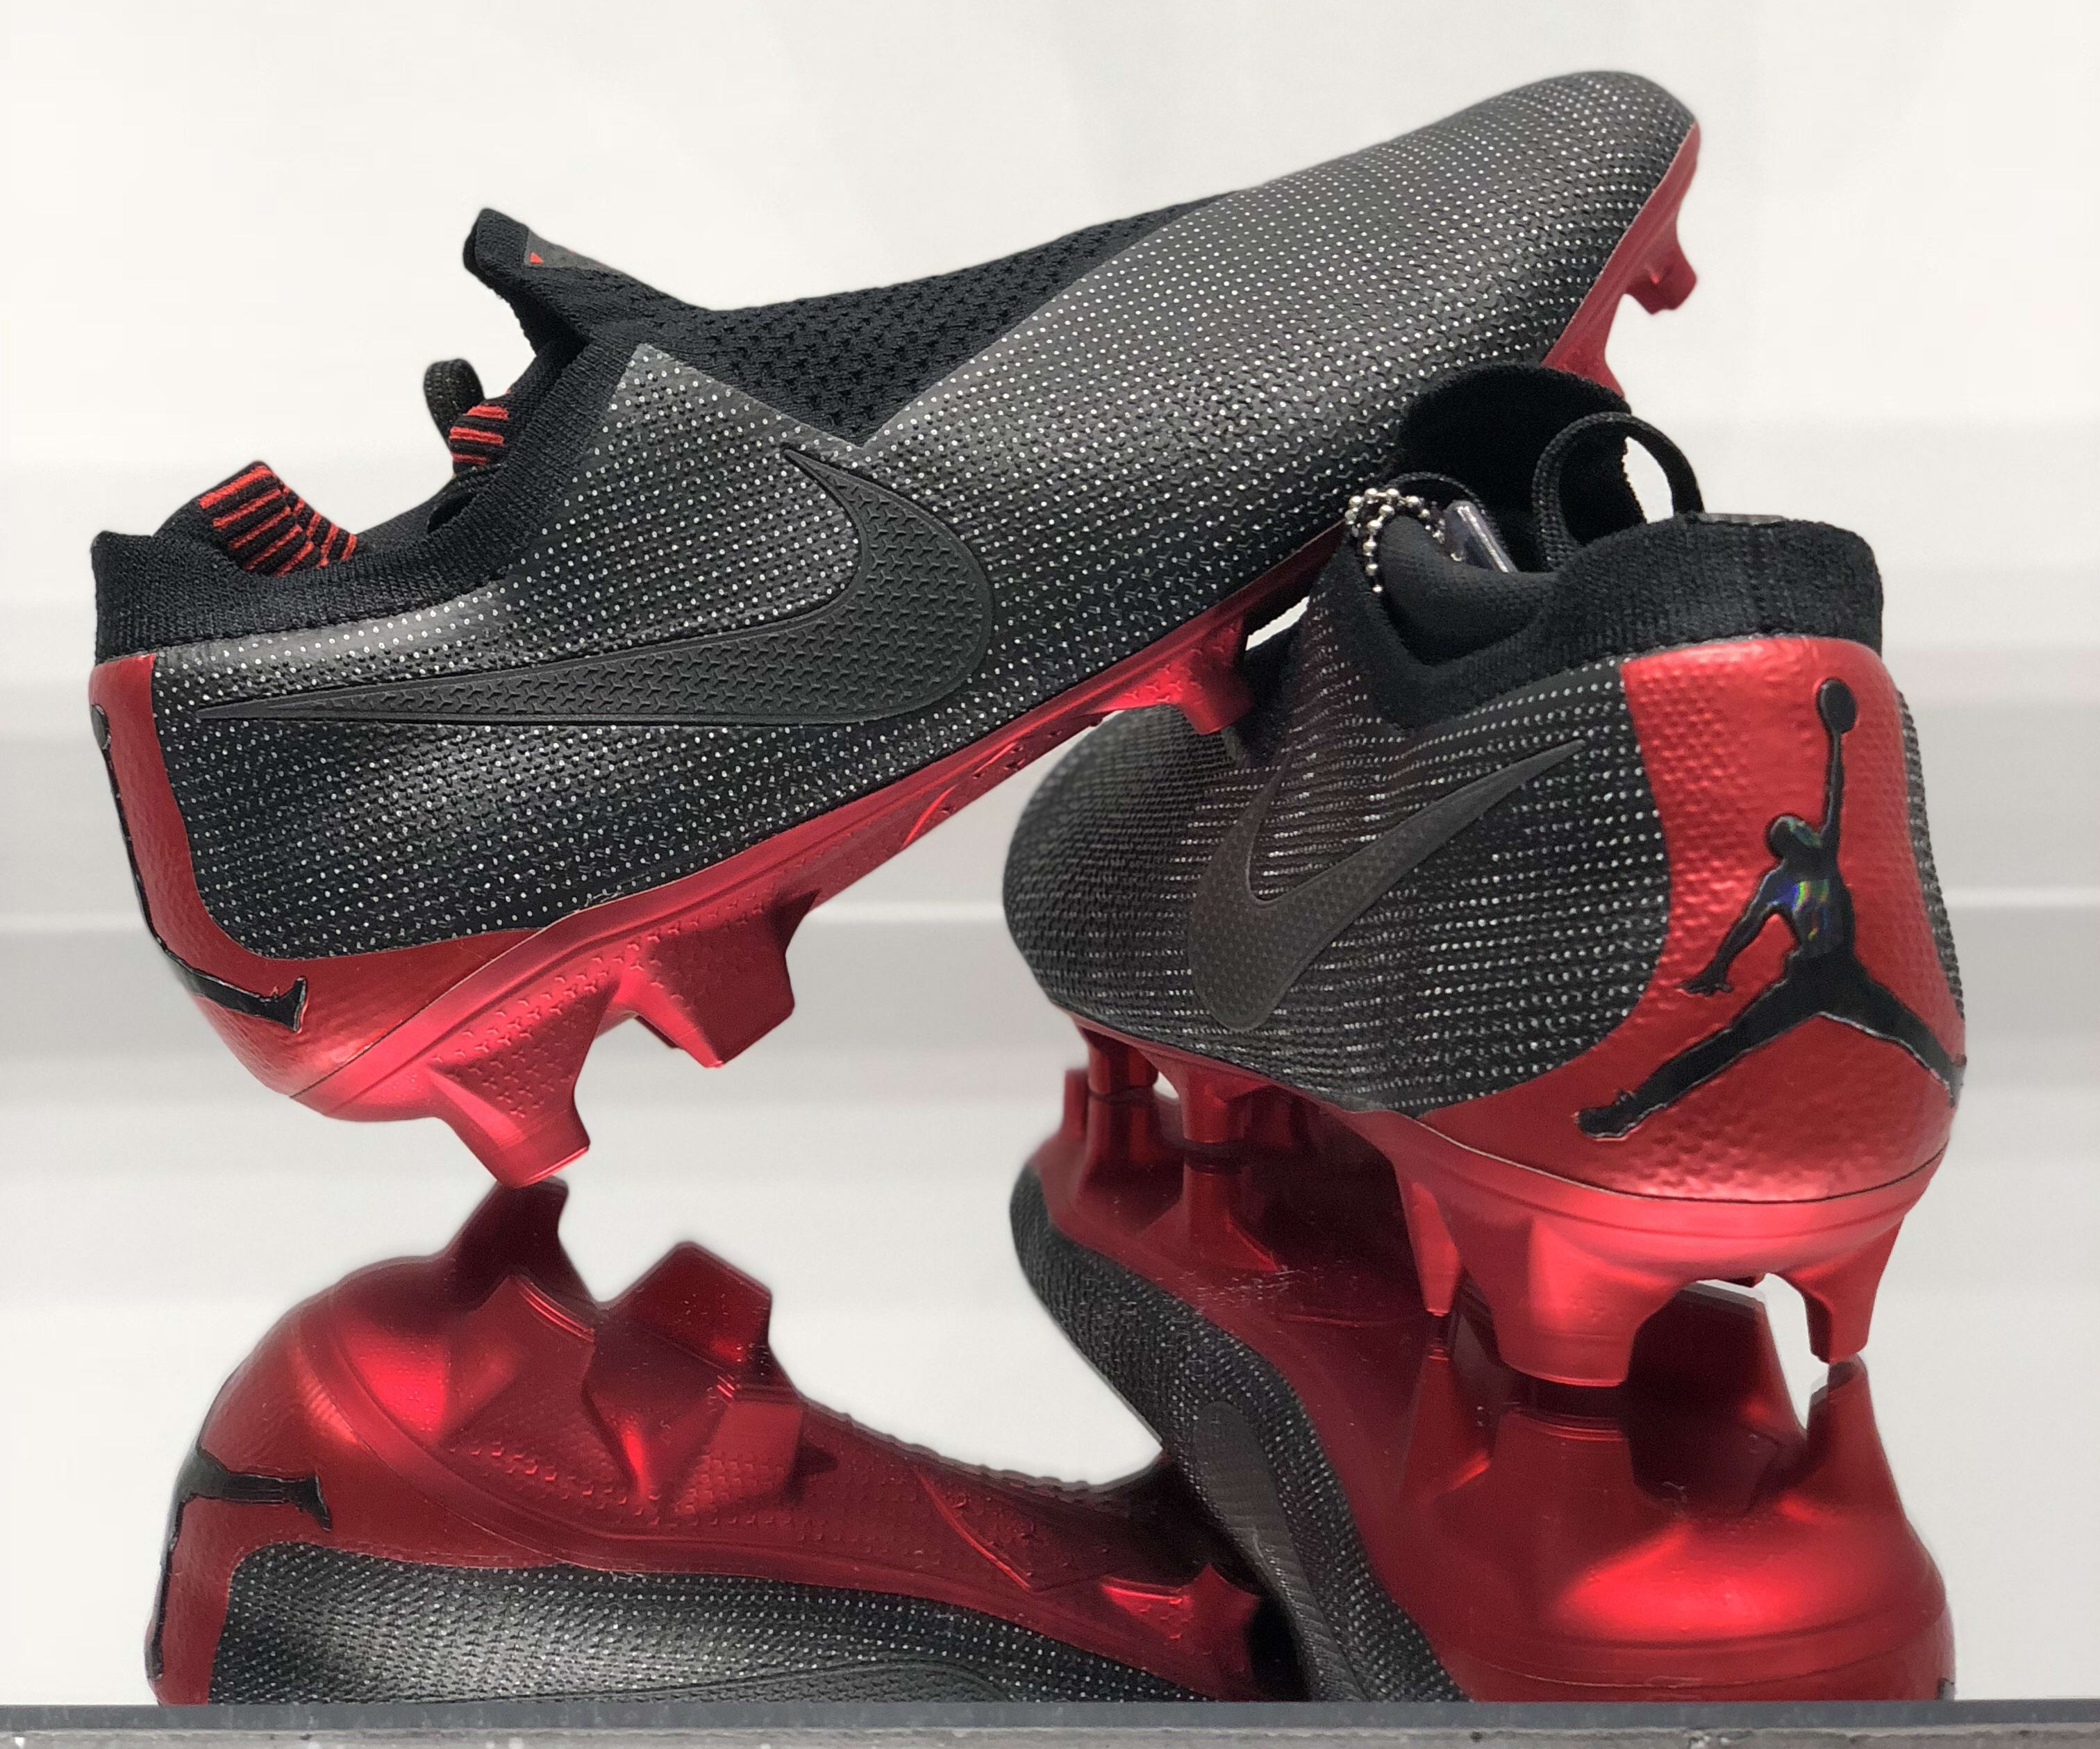 PSG x Jordan x Nike Phantom Vision Elite (Lateral and Heel)